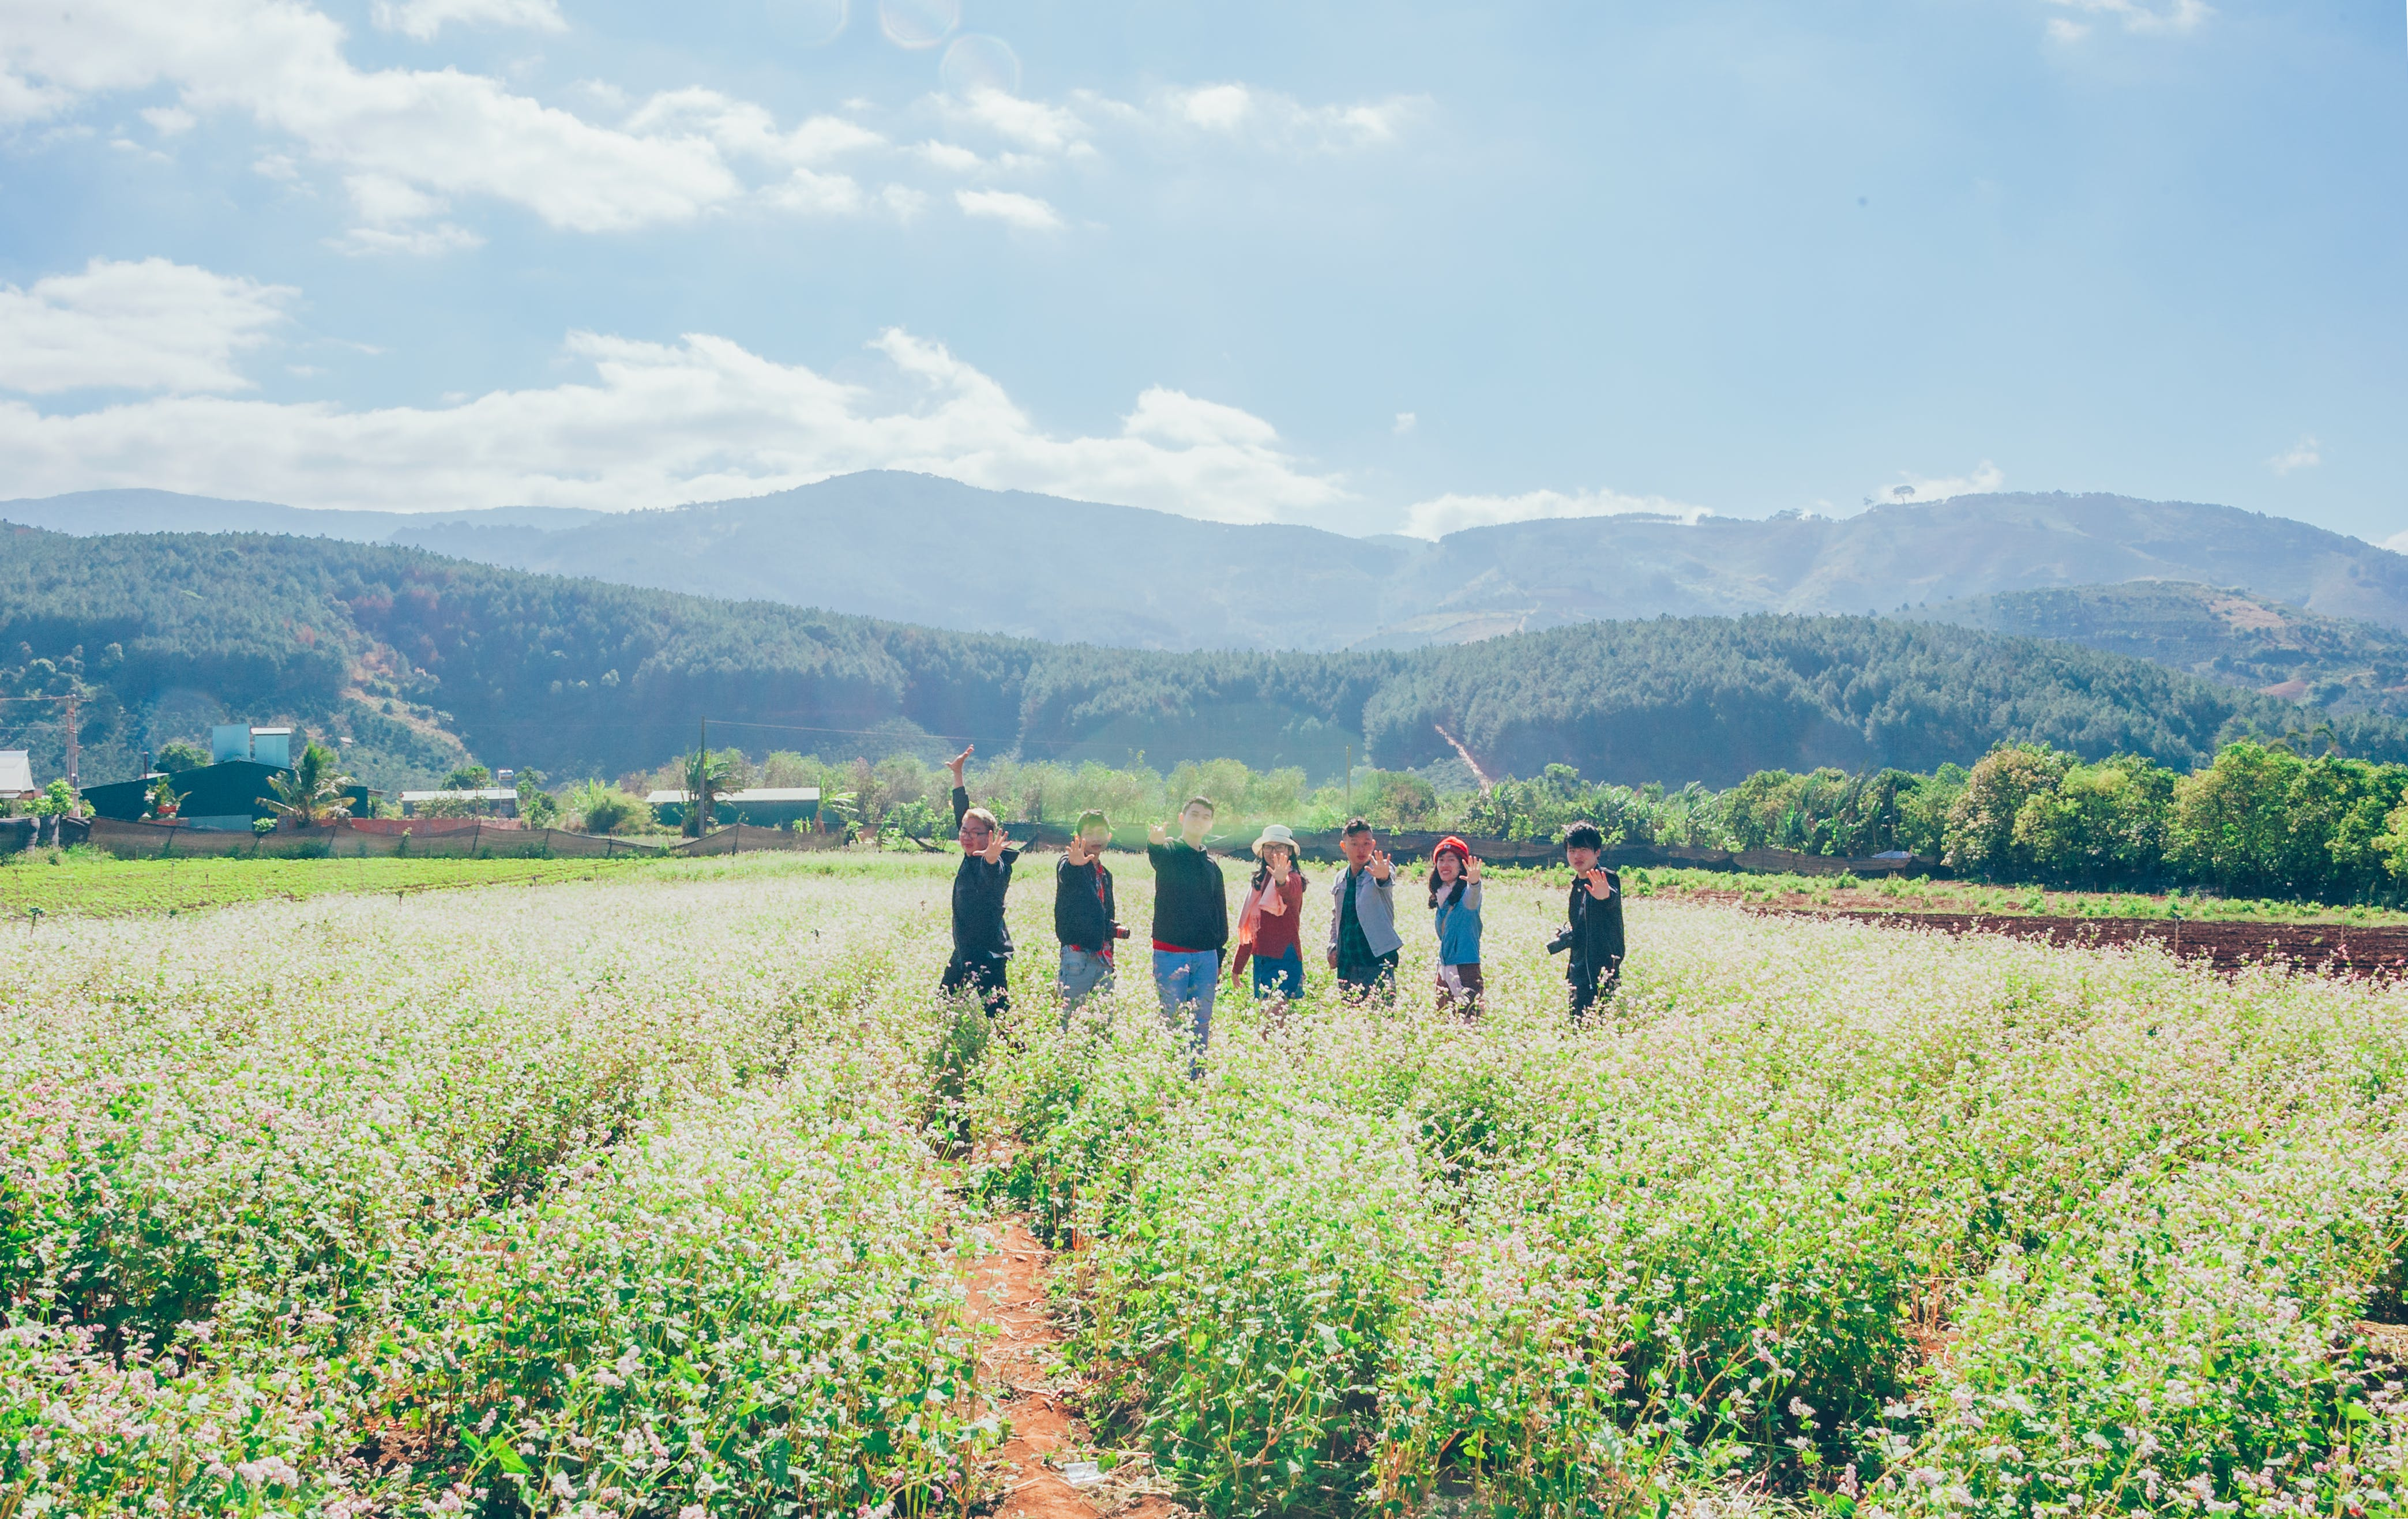 Group Of People Standing On Field Of Plants